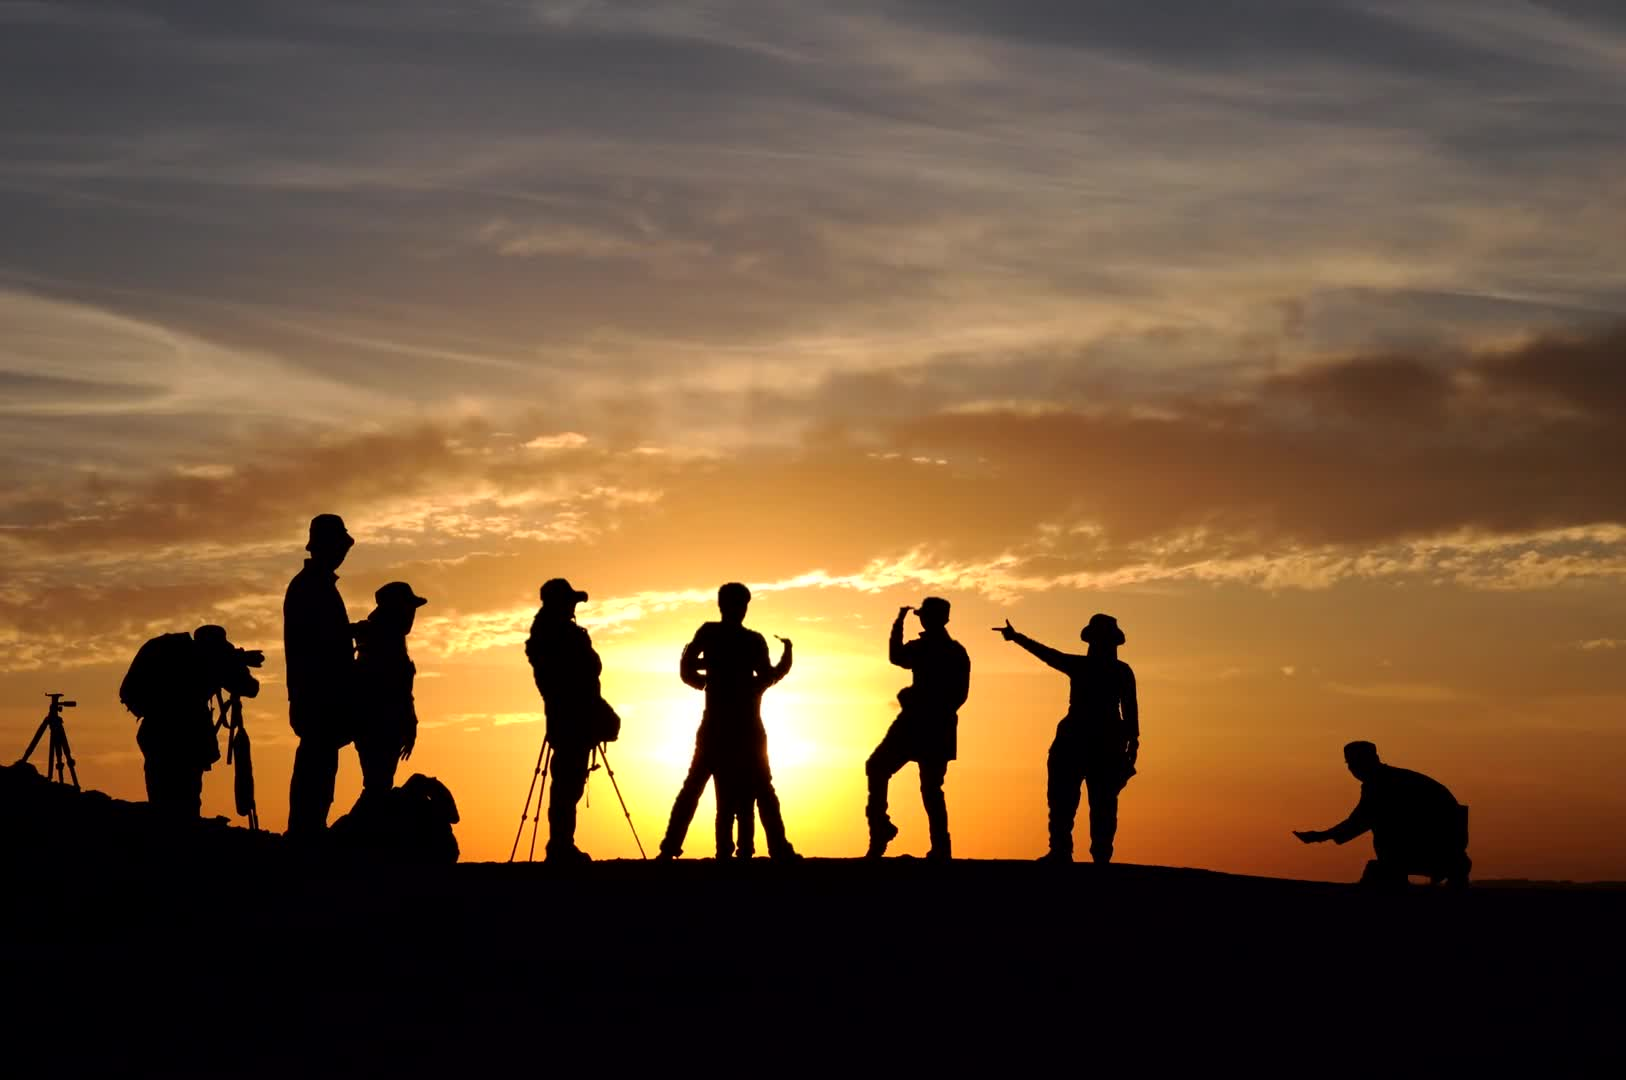 Silhouettes sunset people cinemagraphs